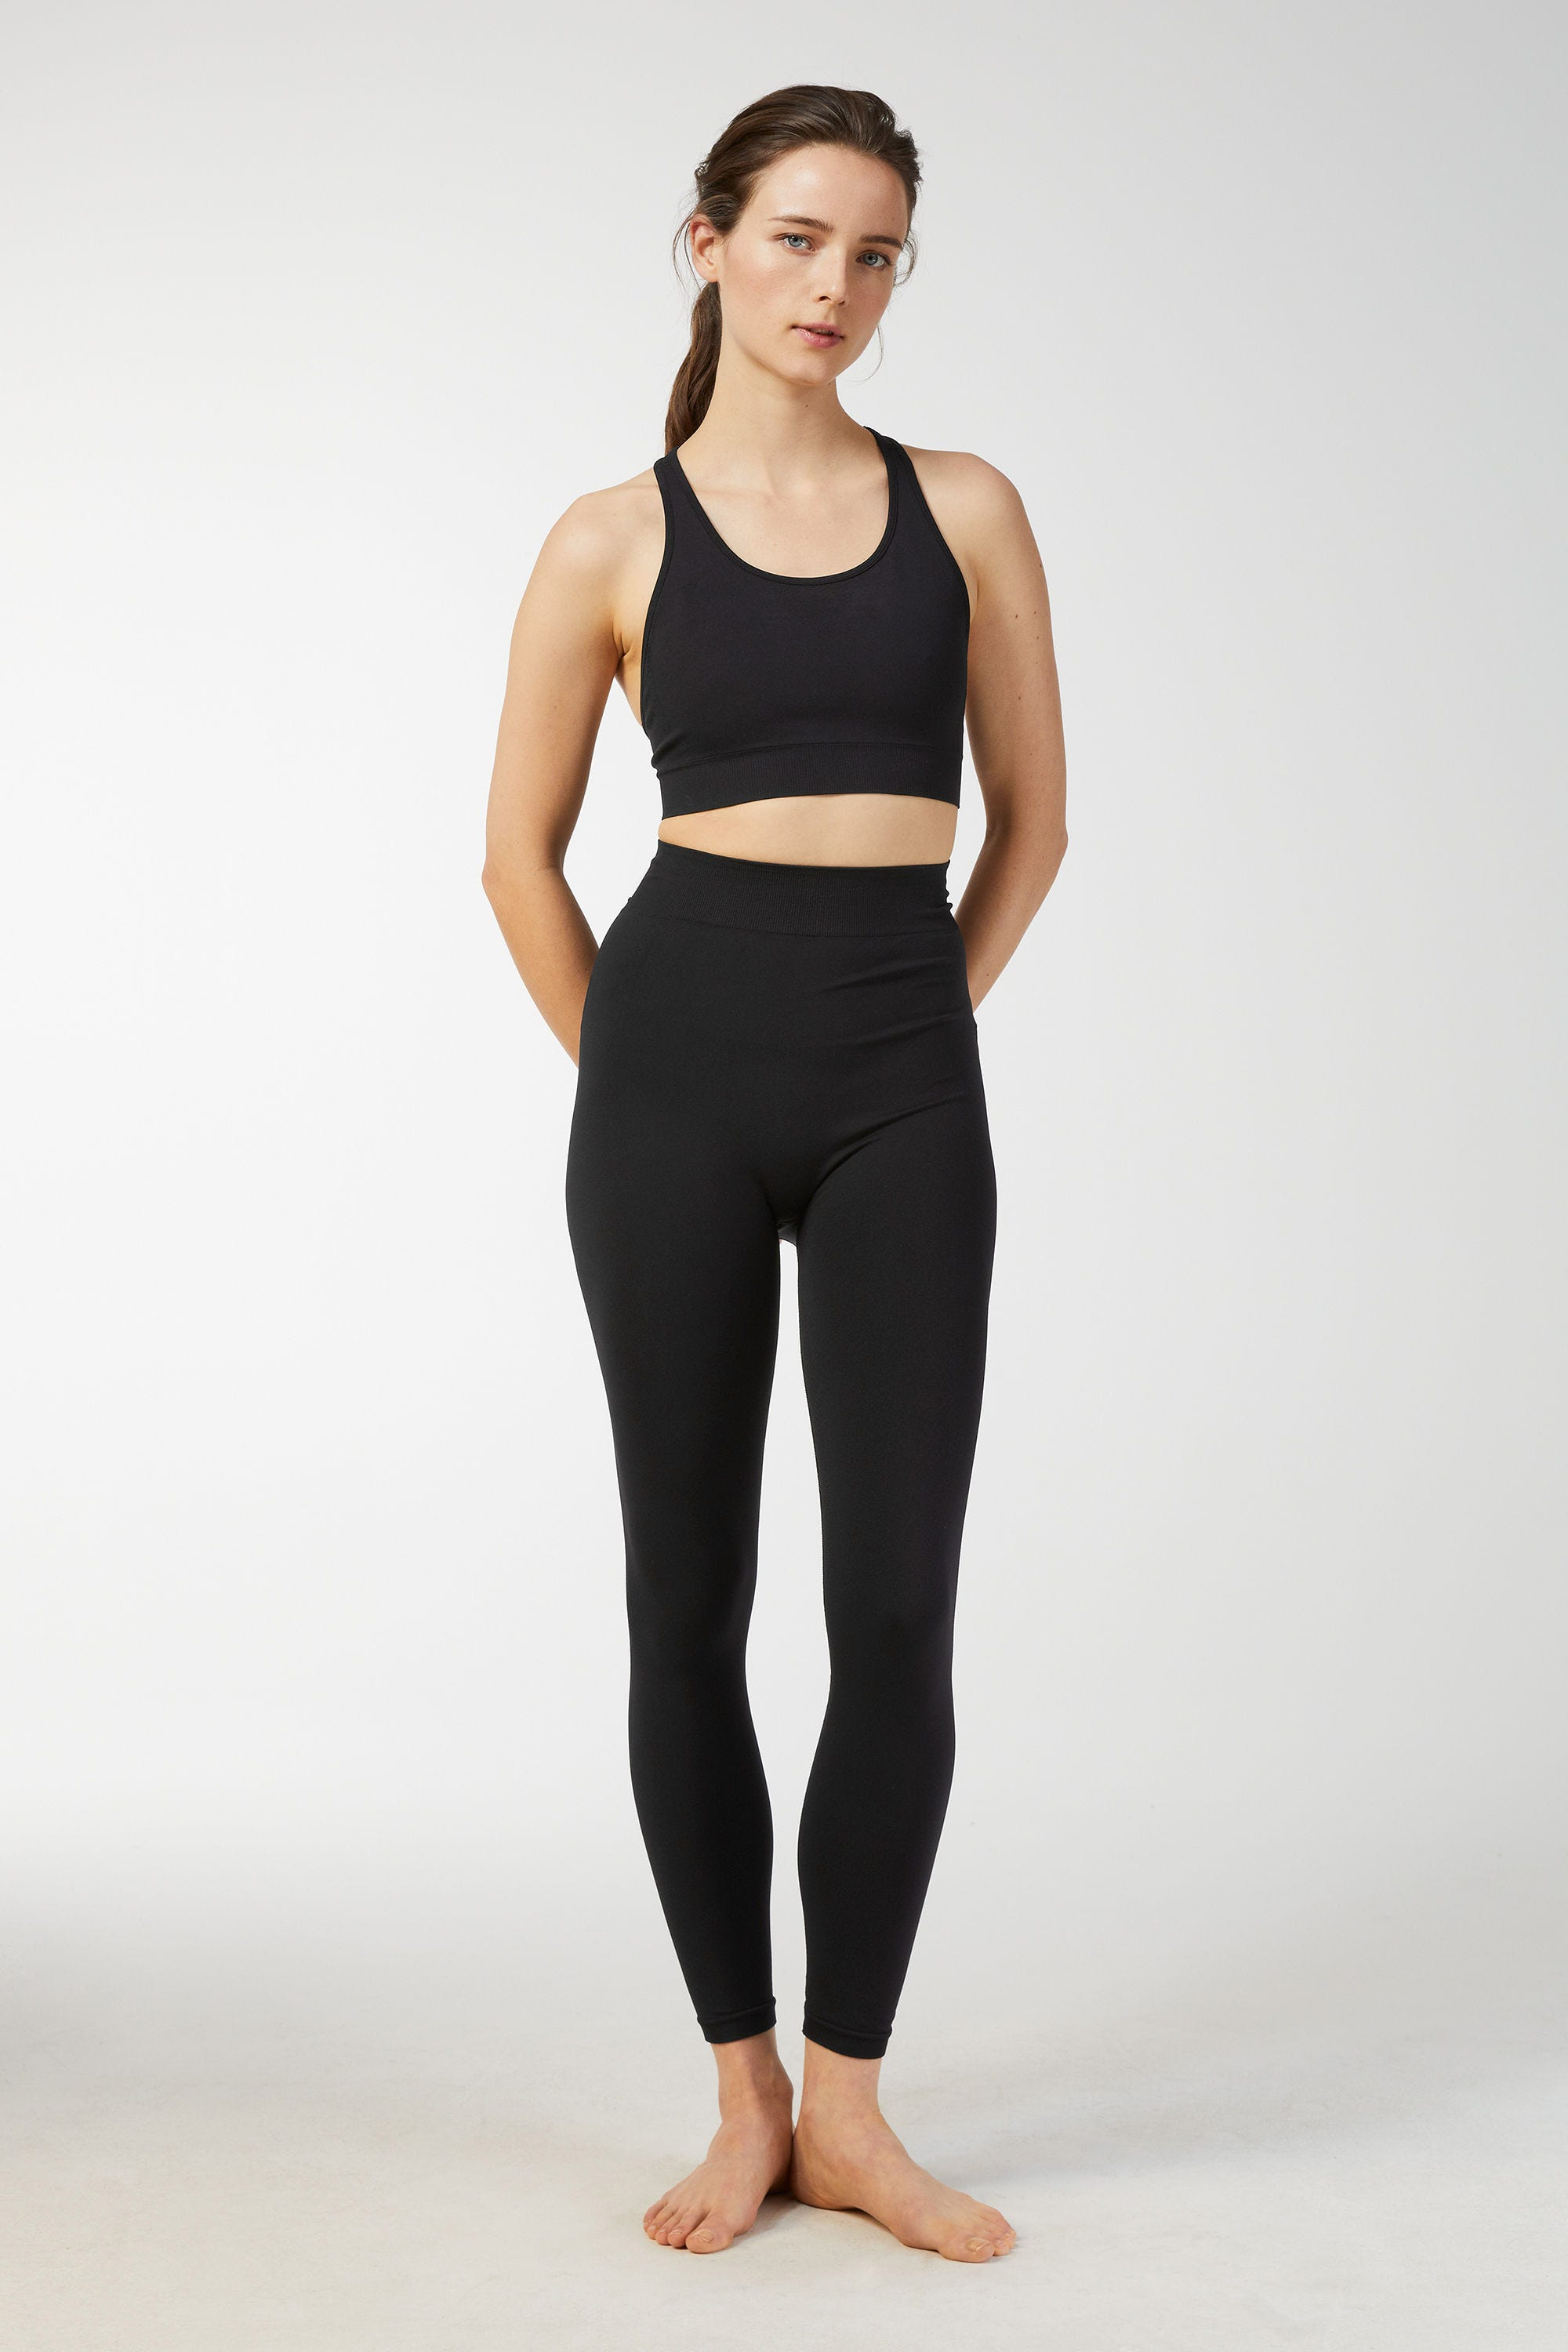 cca8992ff9 Best Fitness Workout Clothing 2019